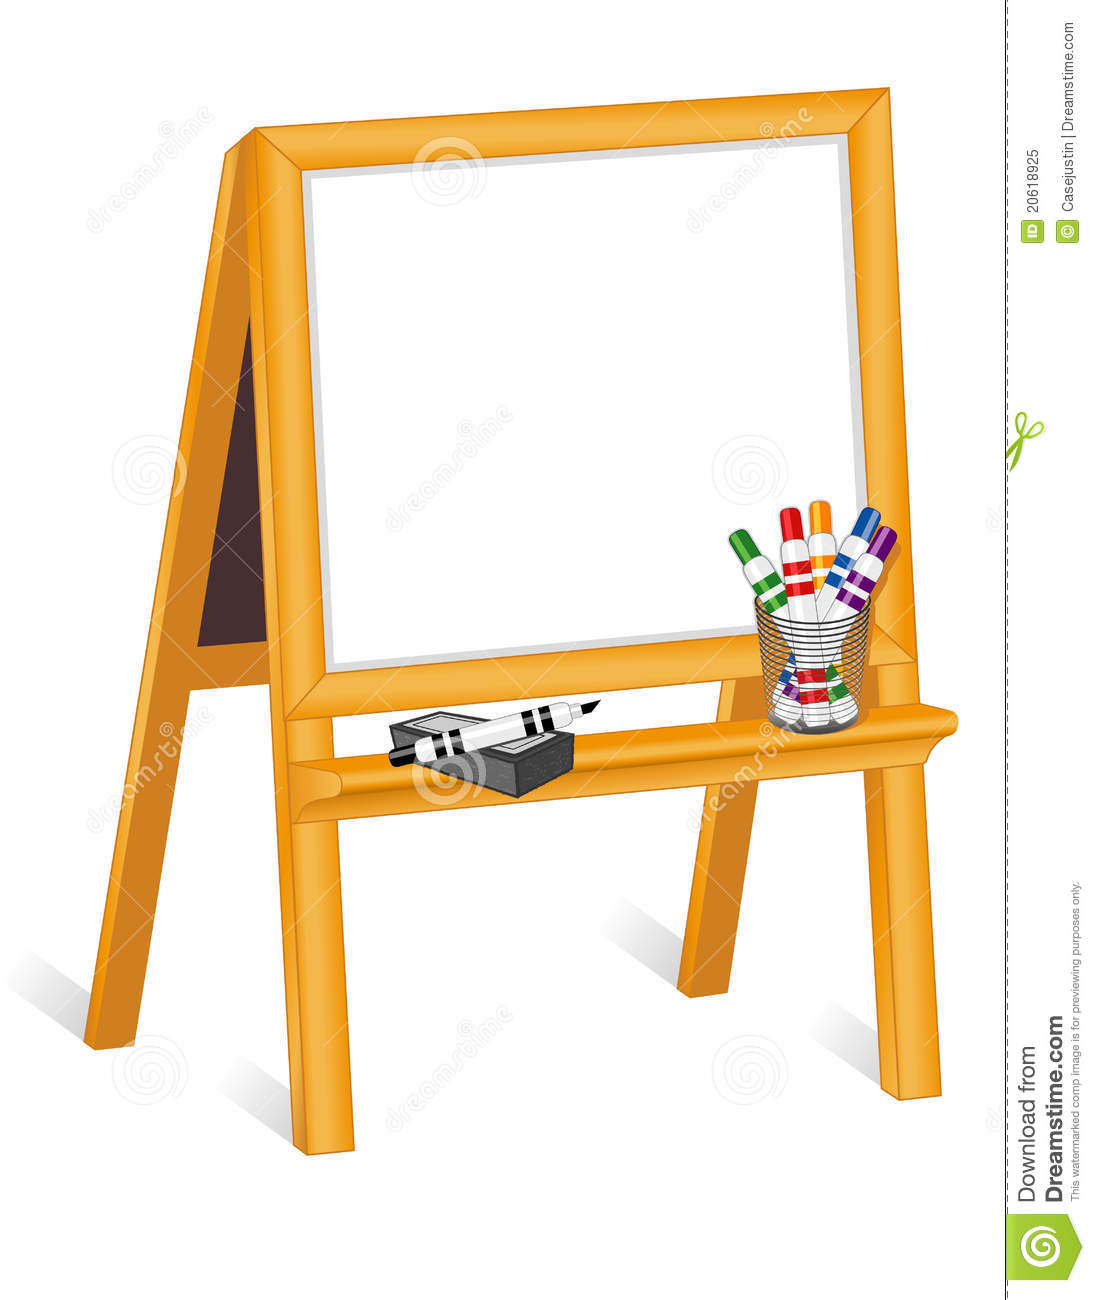 722 Easel free clipart.